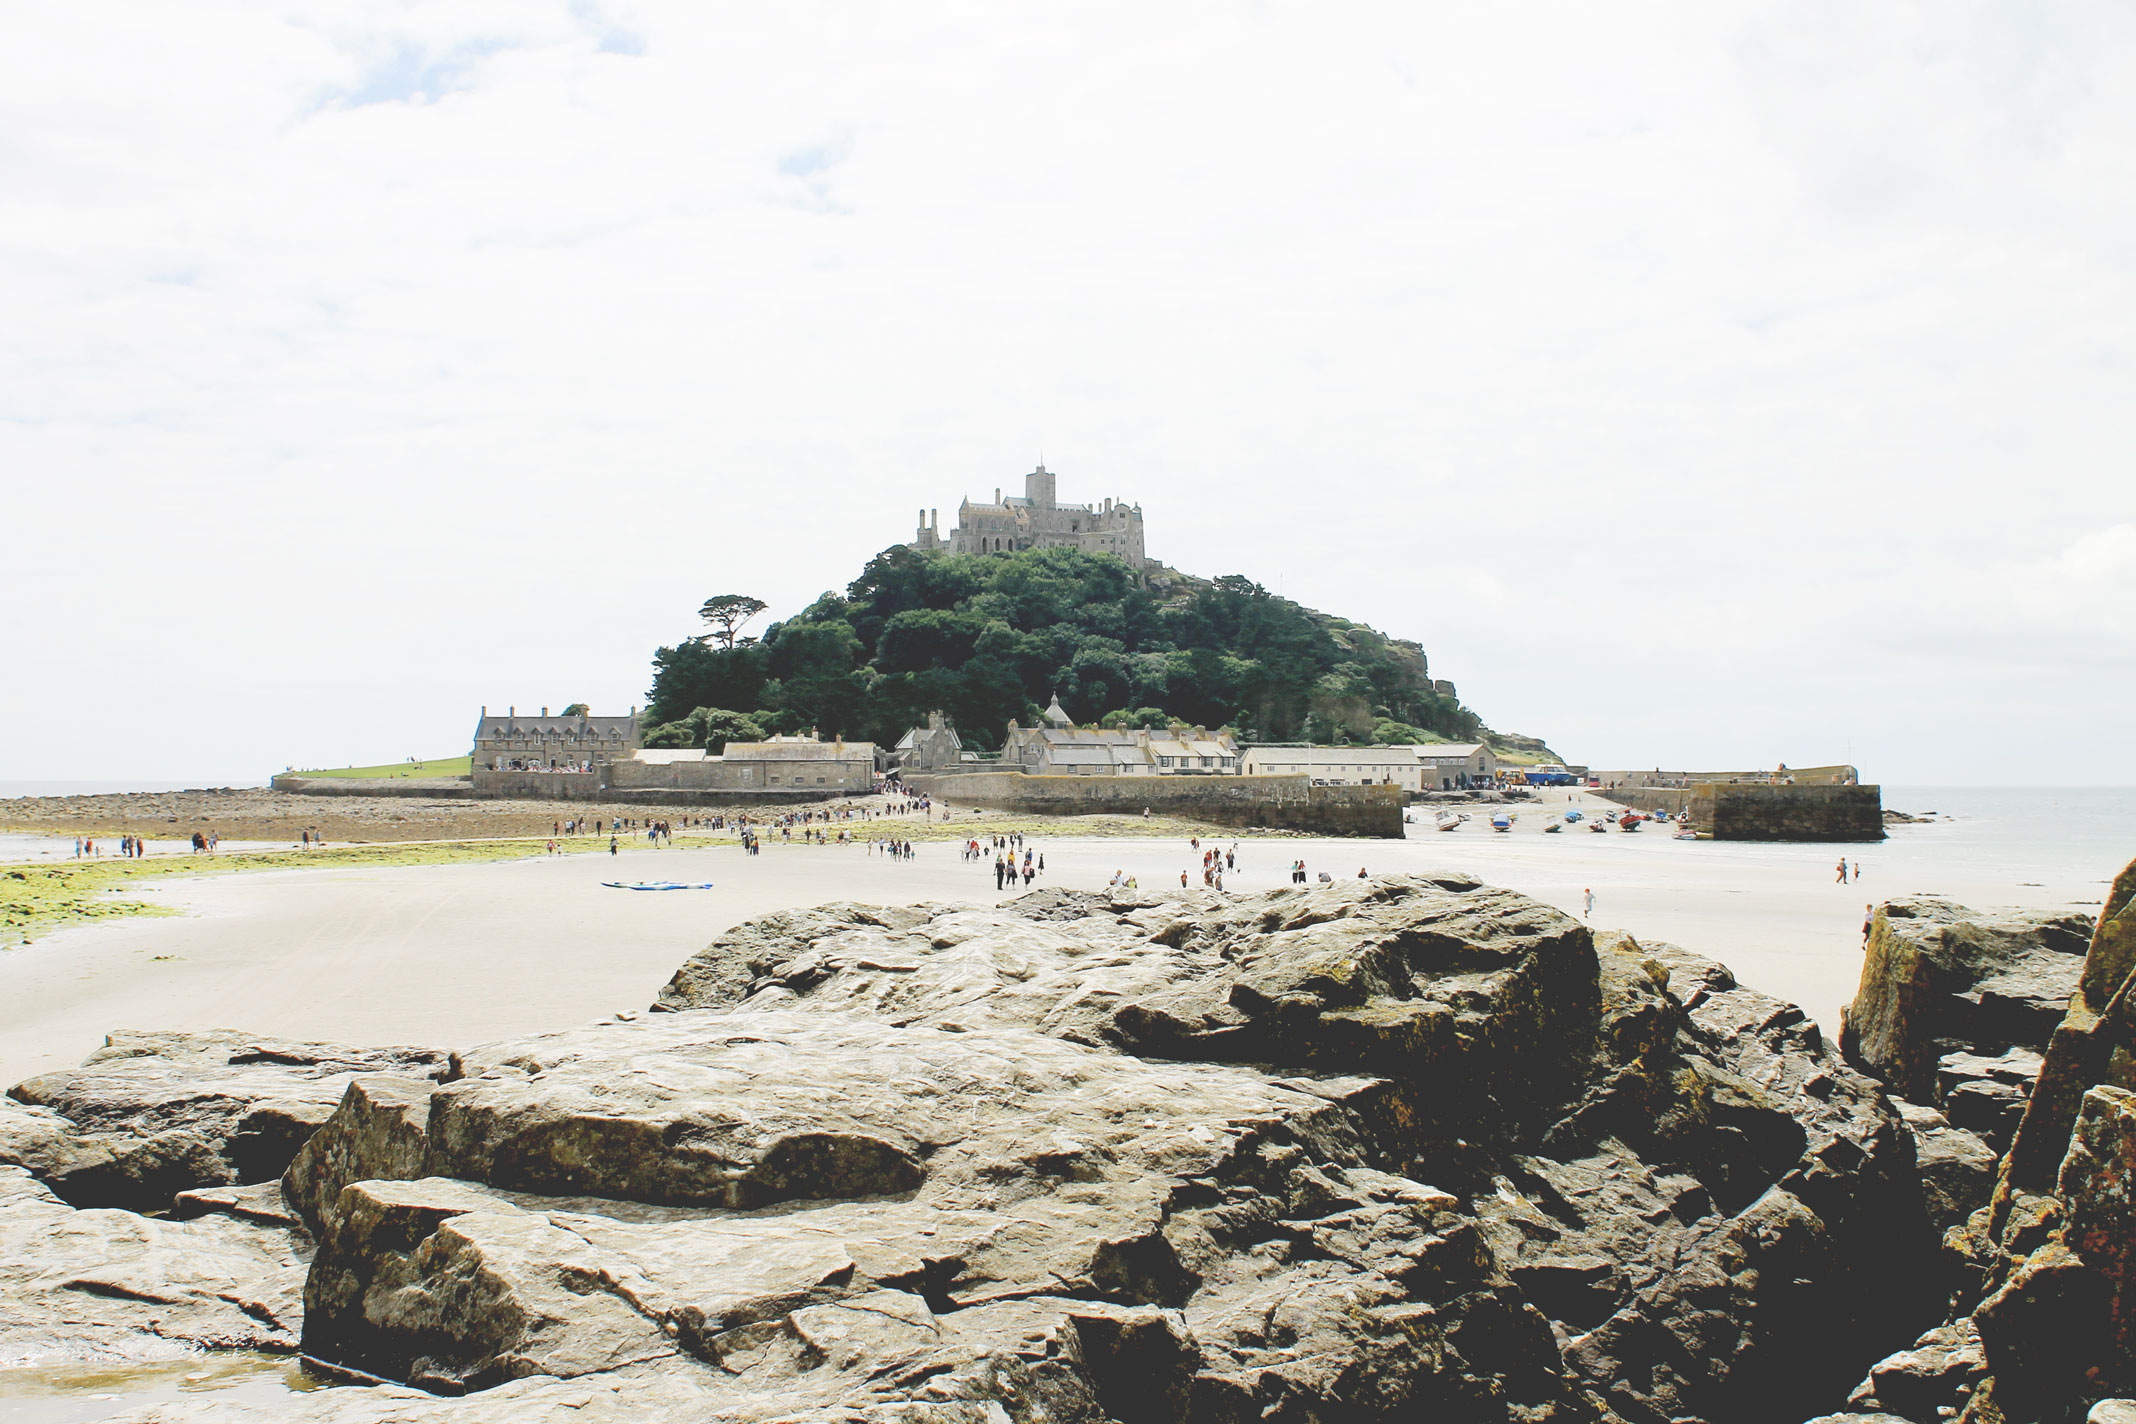 London to Cornwall Holidays - St Michael's Mount - Travel UK - Styleat30 Blog - 02